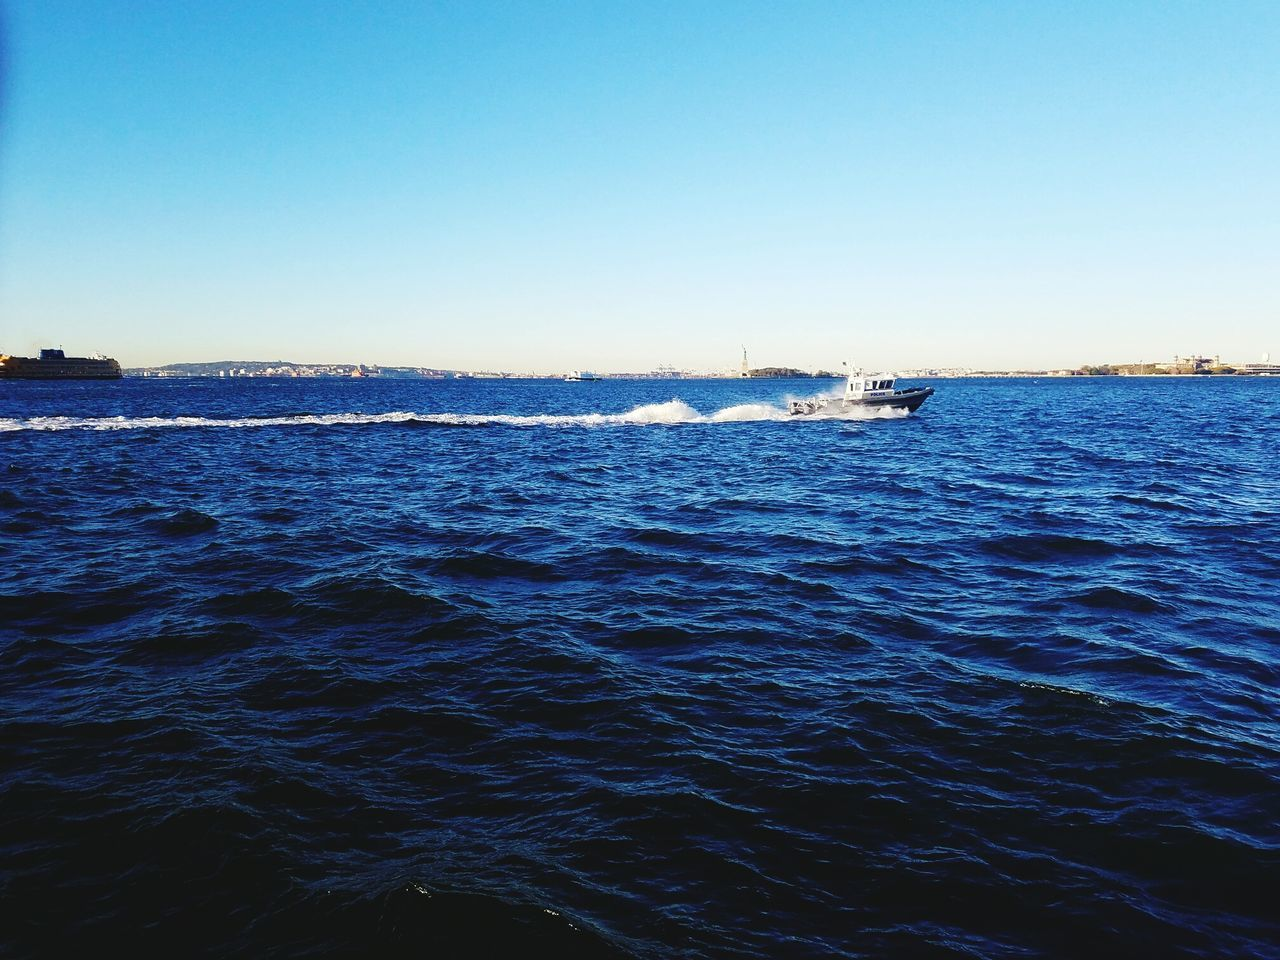 sea, water, nautical vessel, waterfront, nature, outdoors, transportation, blue, clear sky, no people, day, mode of transport, wake - water, beauty in nature, sailing, wave, sky, jet boat